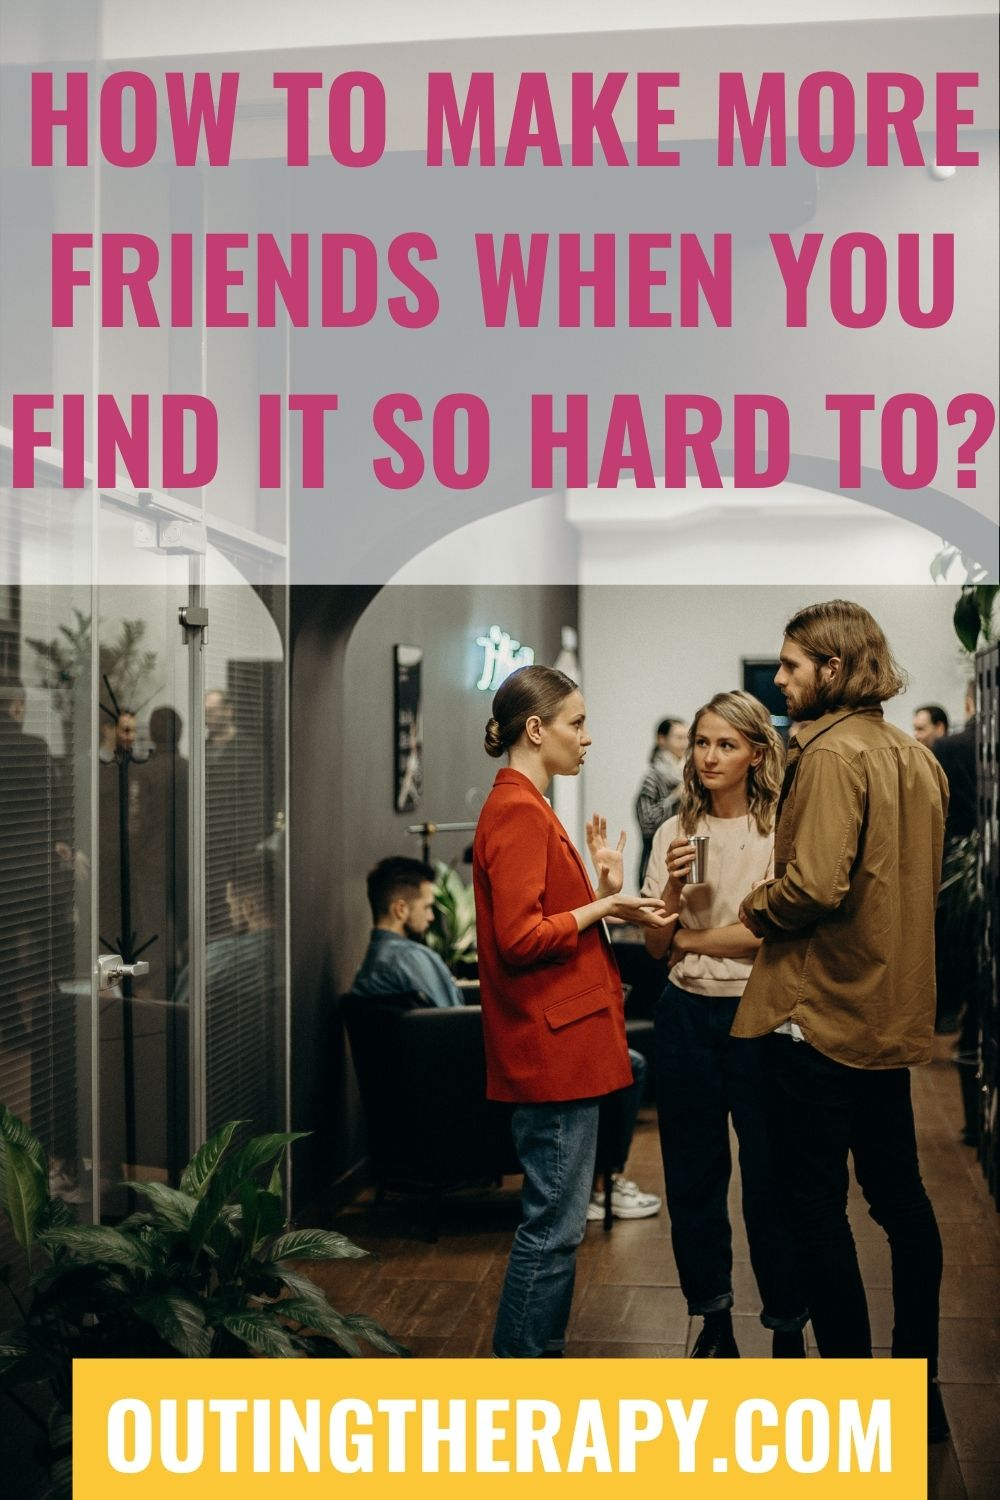 HOW TO MAKE MORE FRIENDS WHEN YOU FIND IT SO HARD TO?